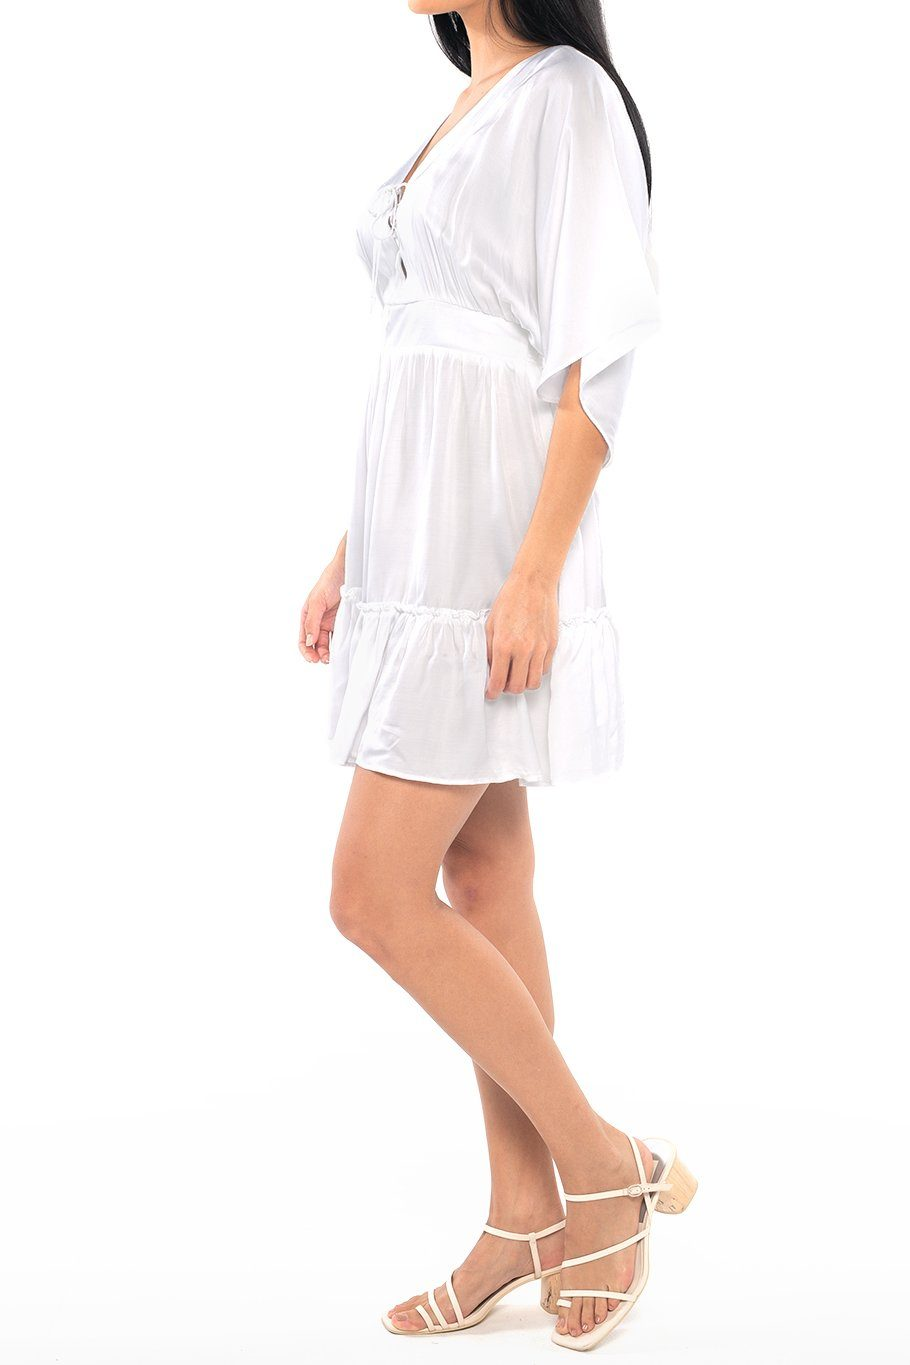 Lisbon Layered Mini Dress - Satin White